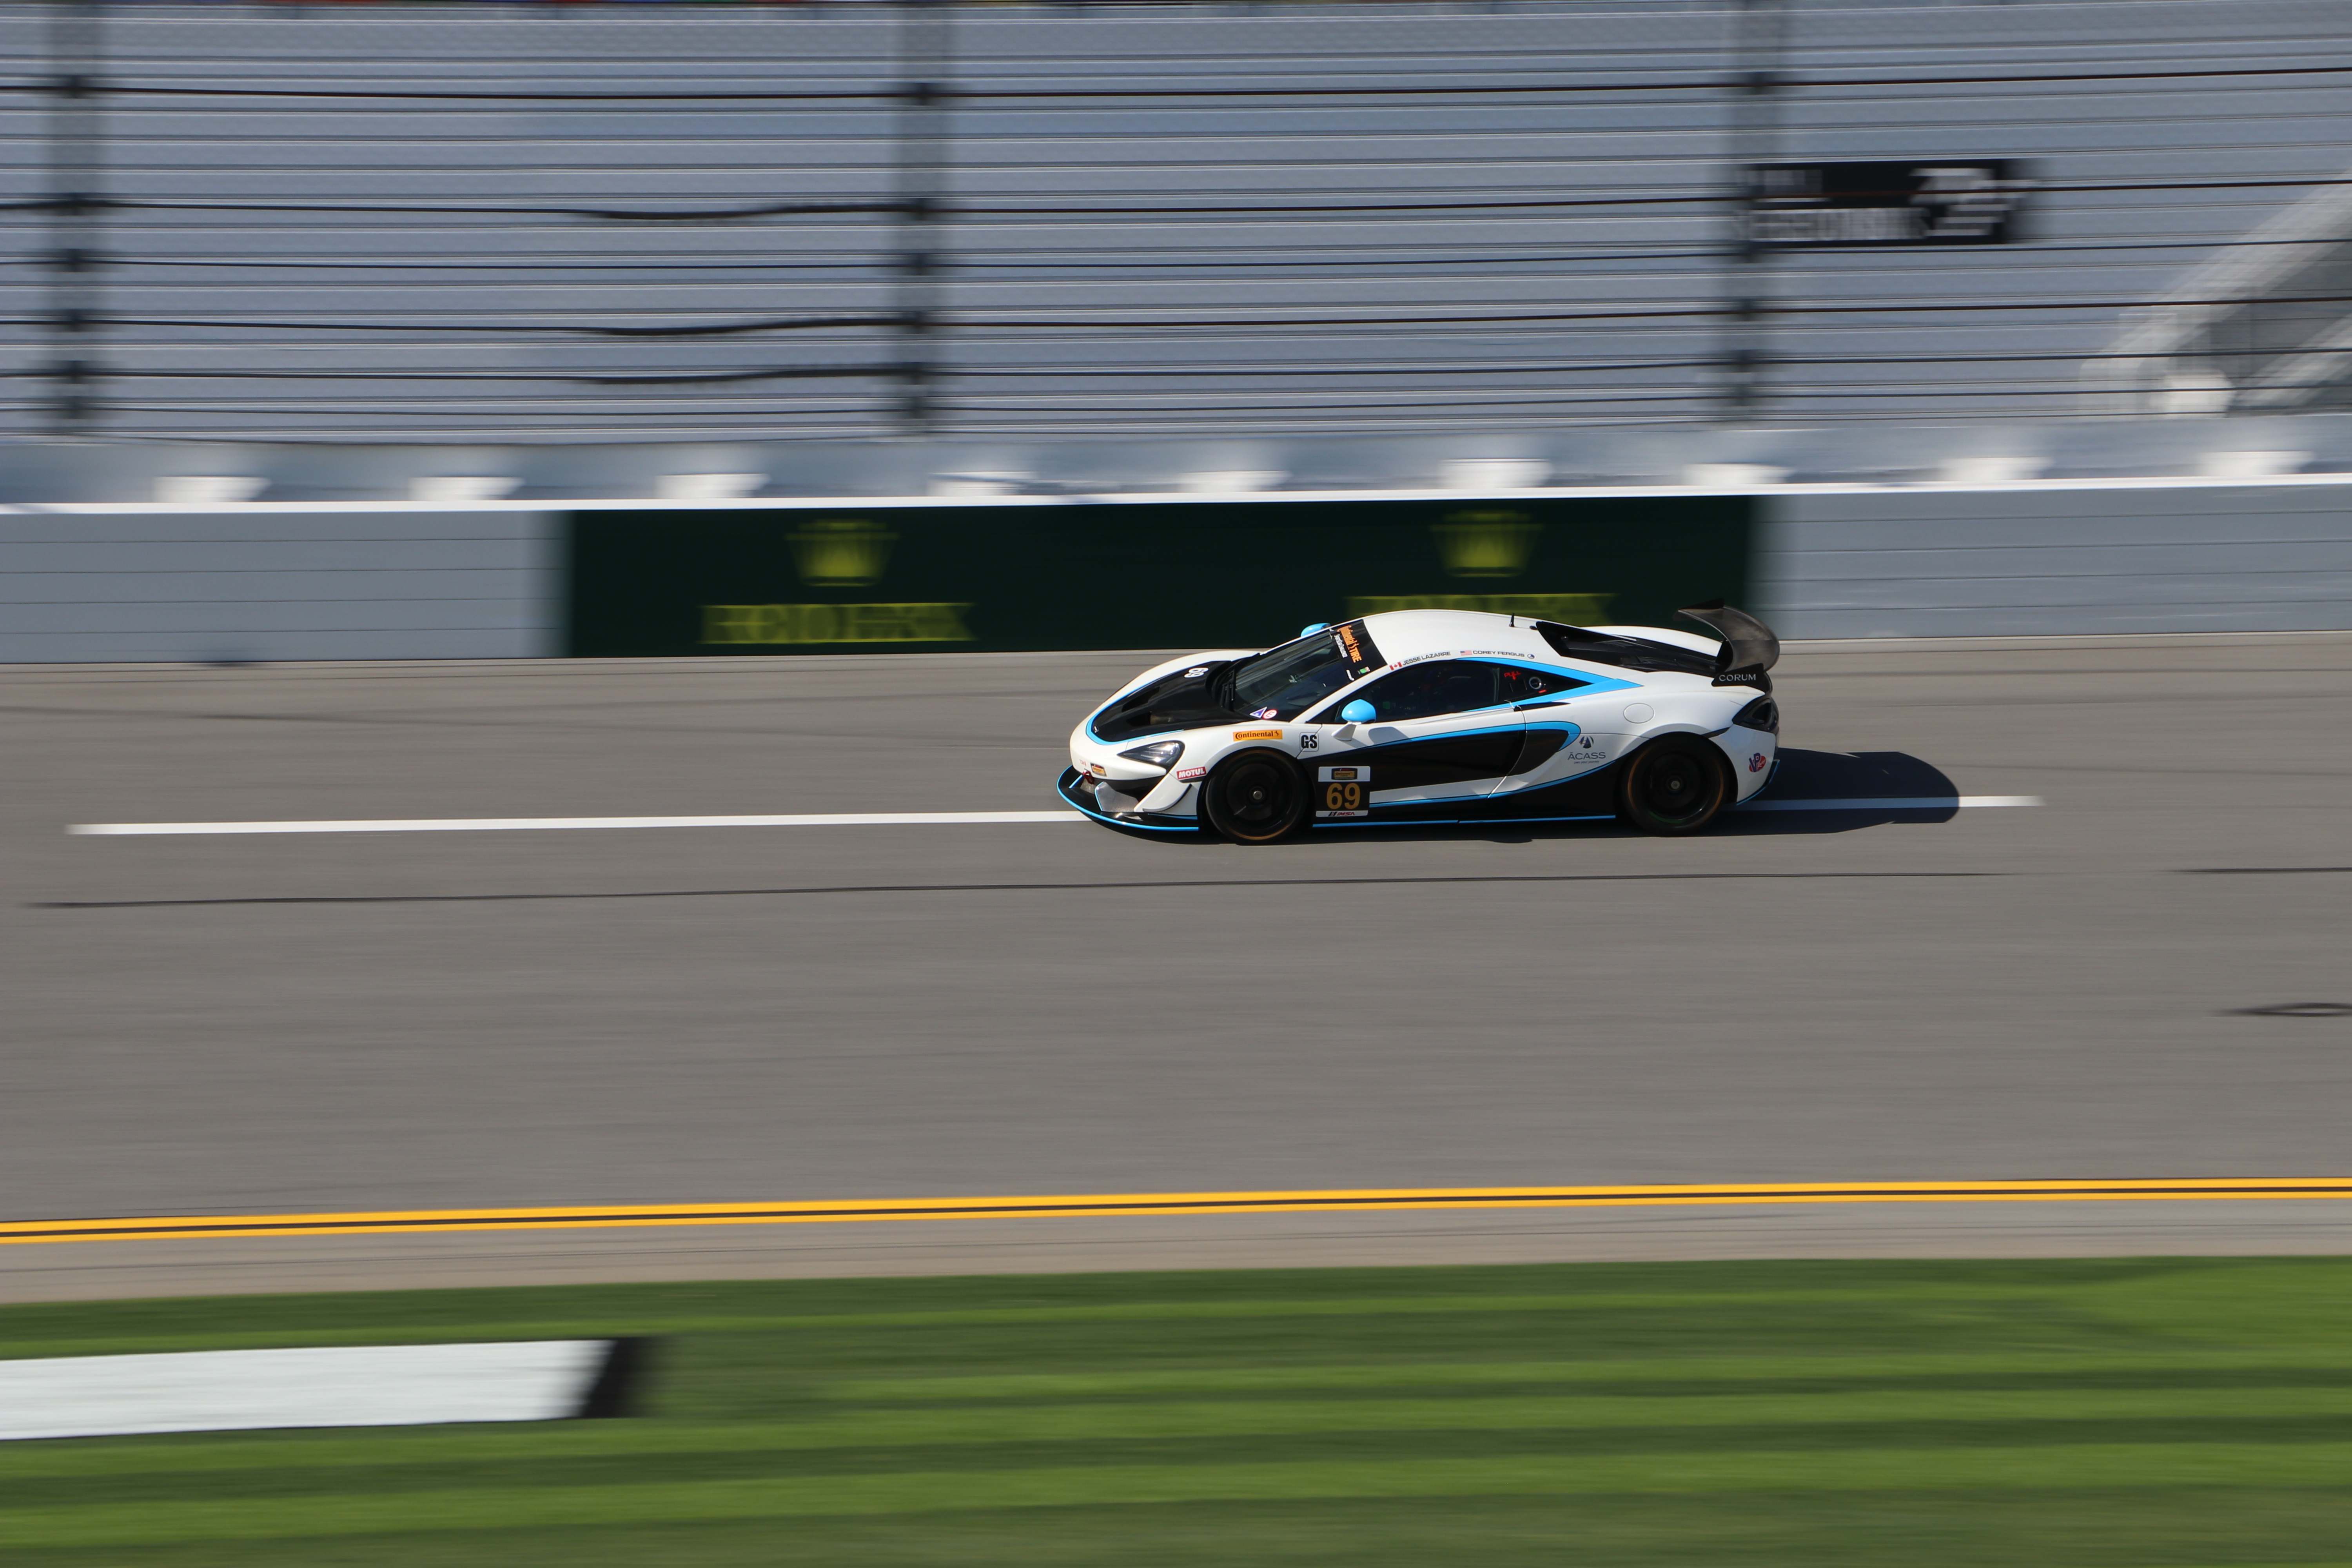 Disappointment For Motorsports In Action In Daytona